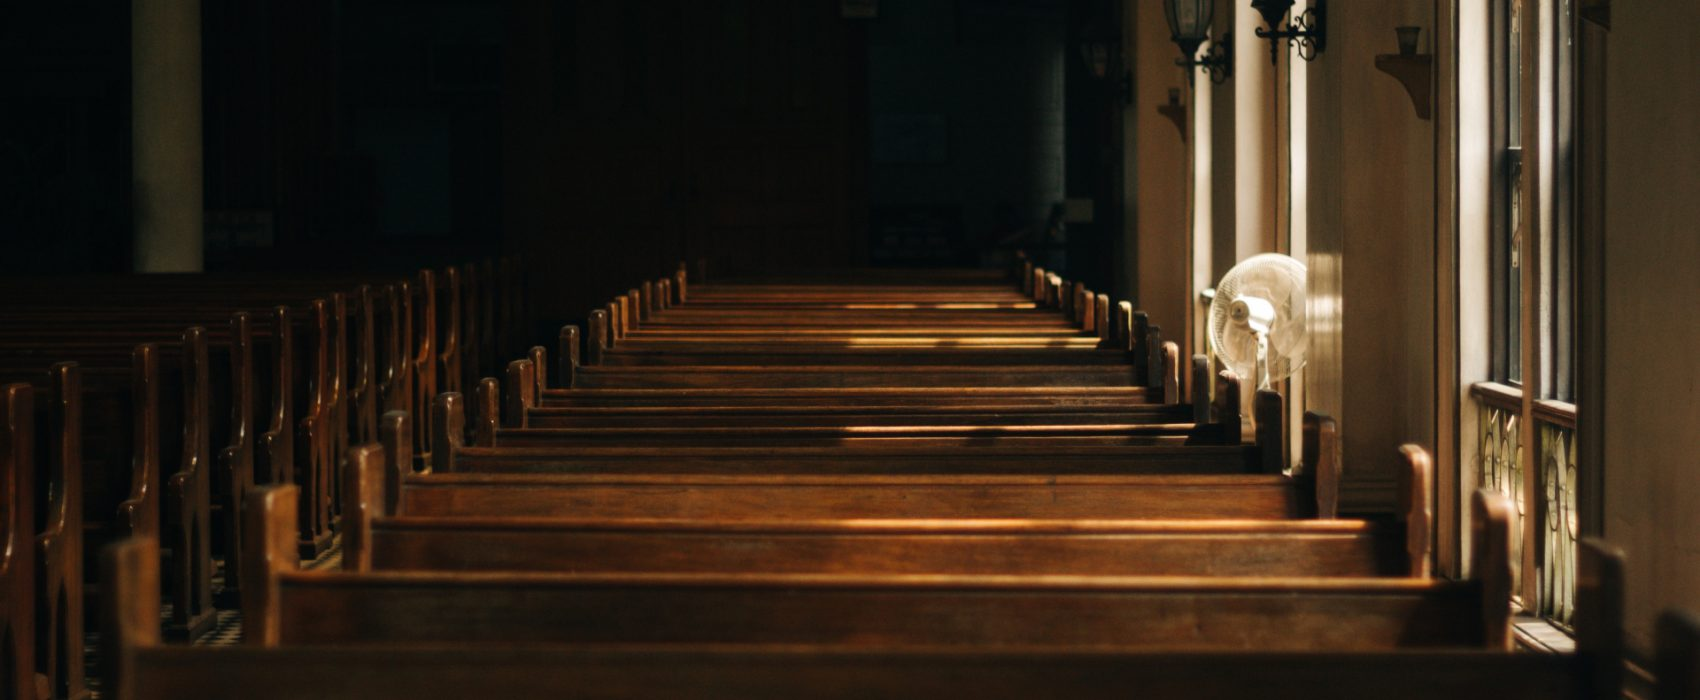 A row of empty pews in a church building